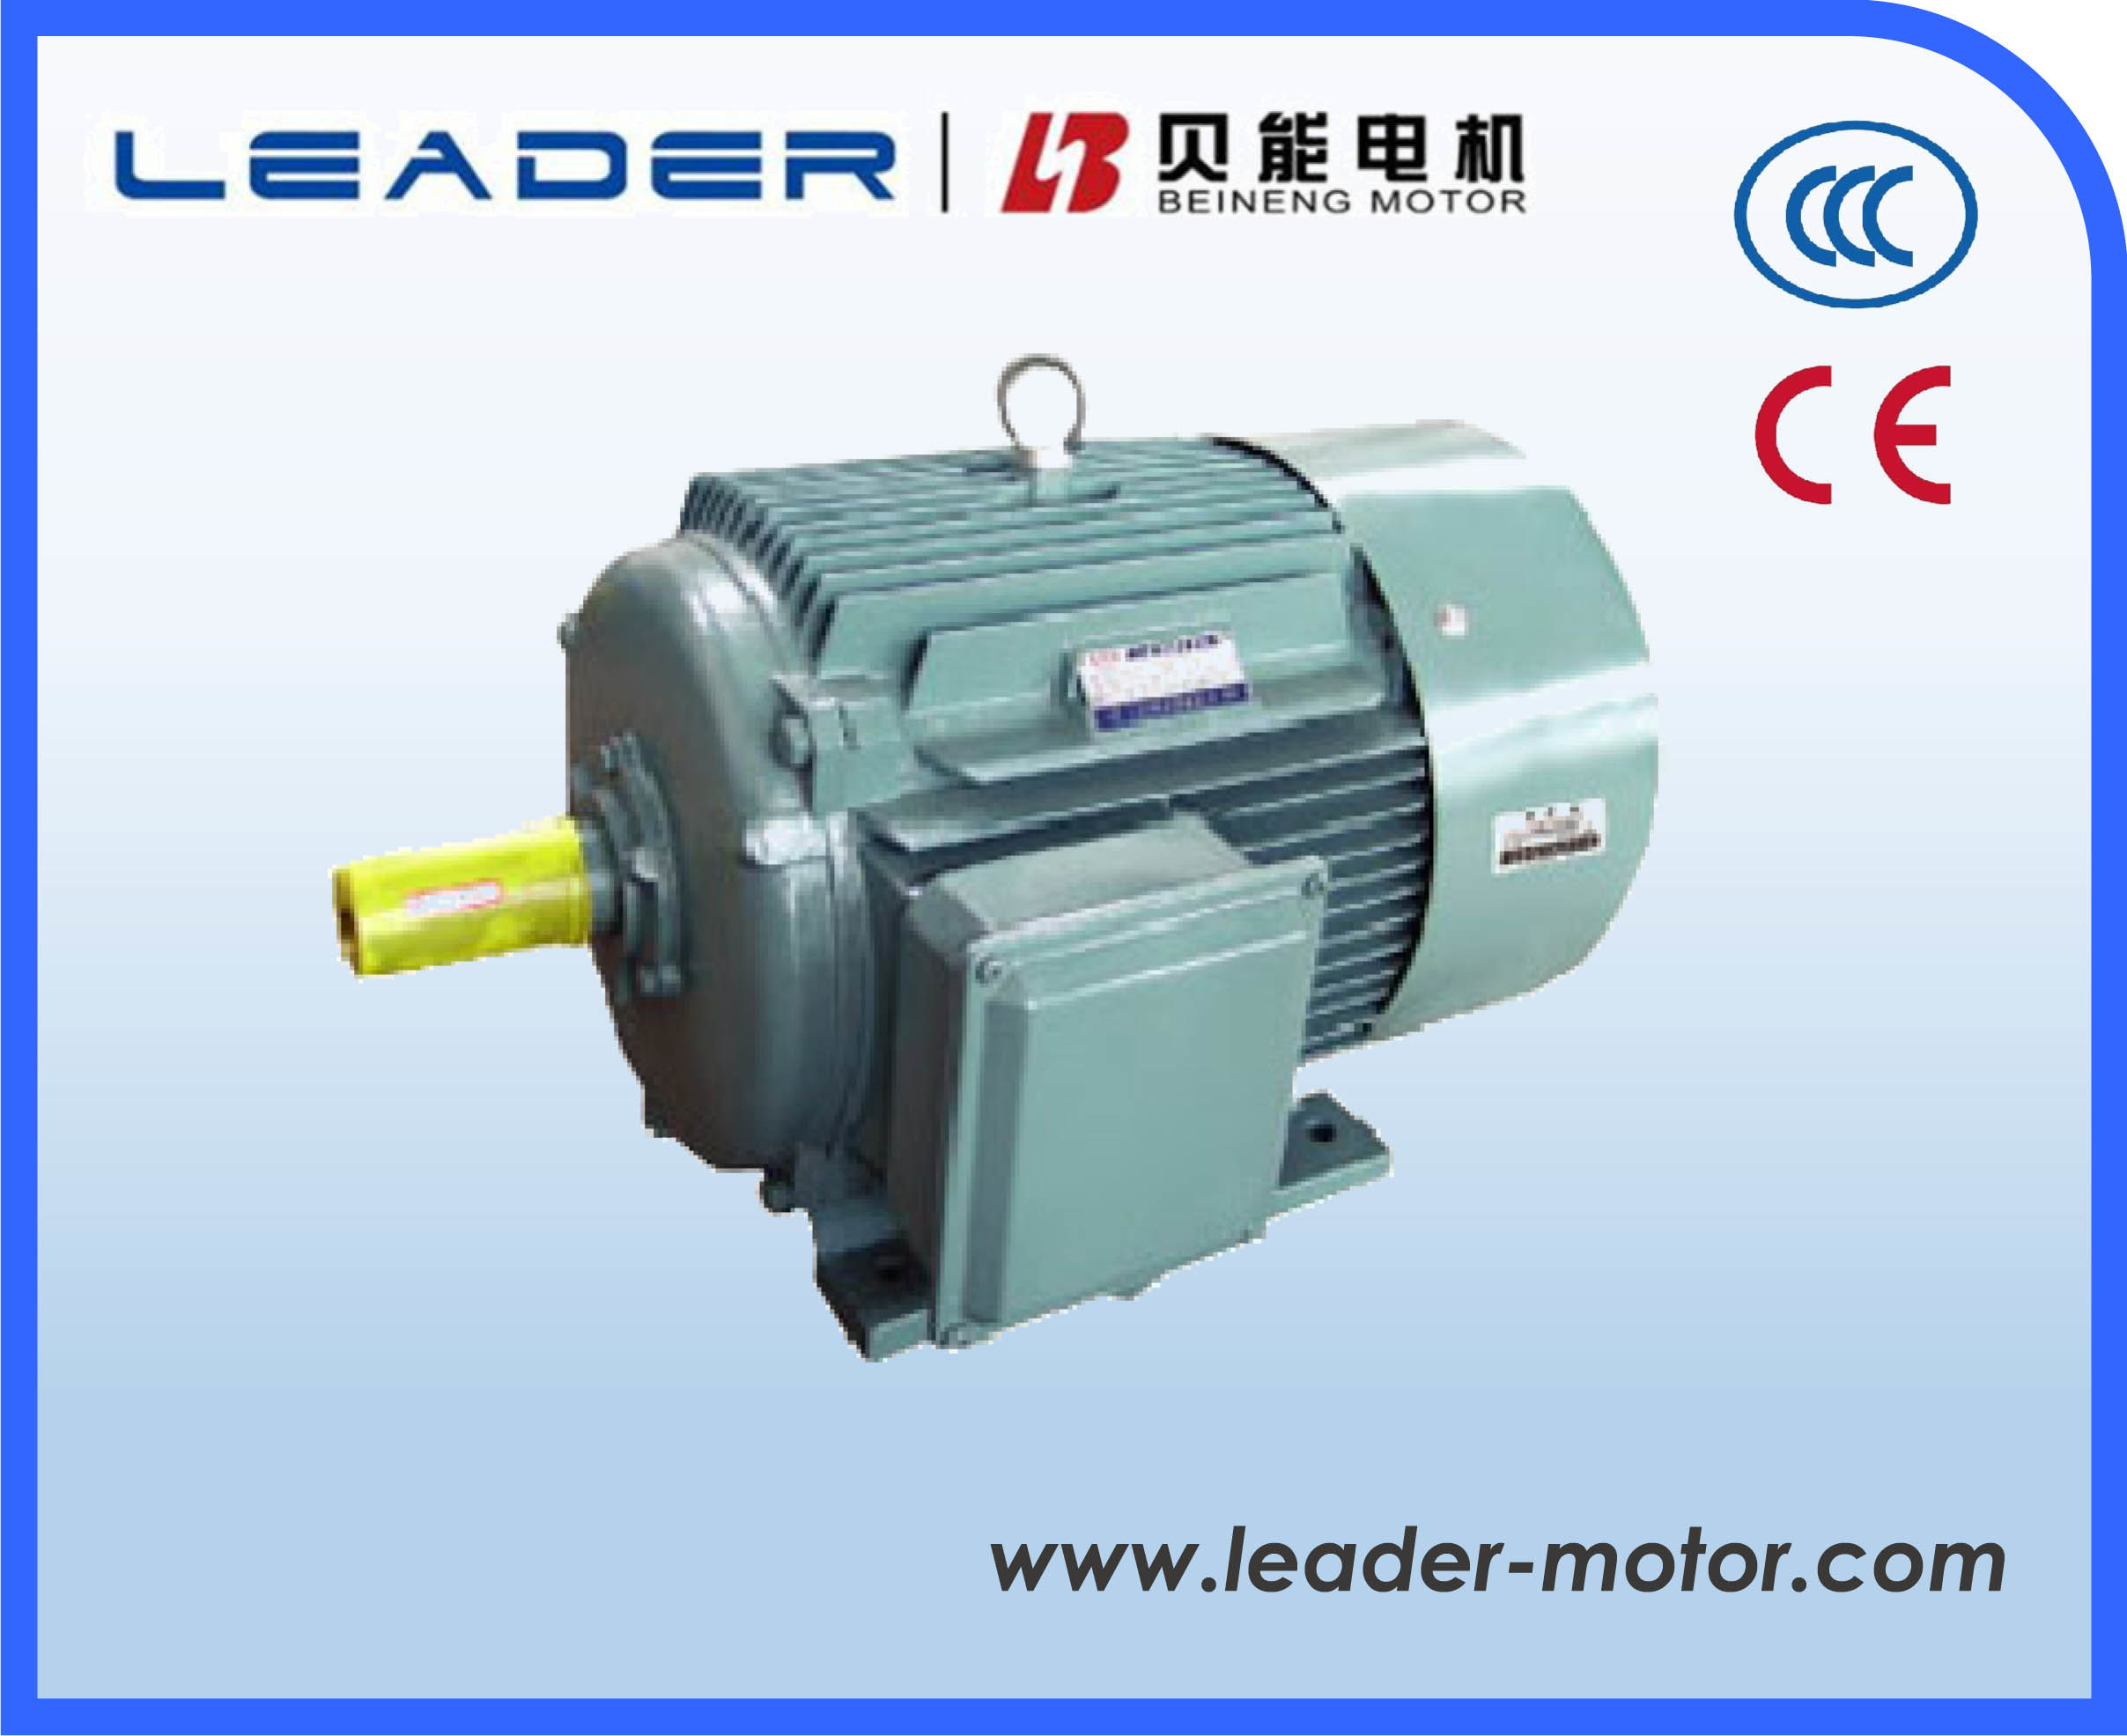 Yd2 Series Pole-Changing Multi-Speed Induction Electric Motors